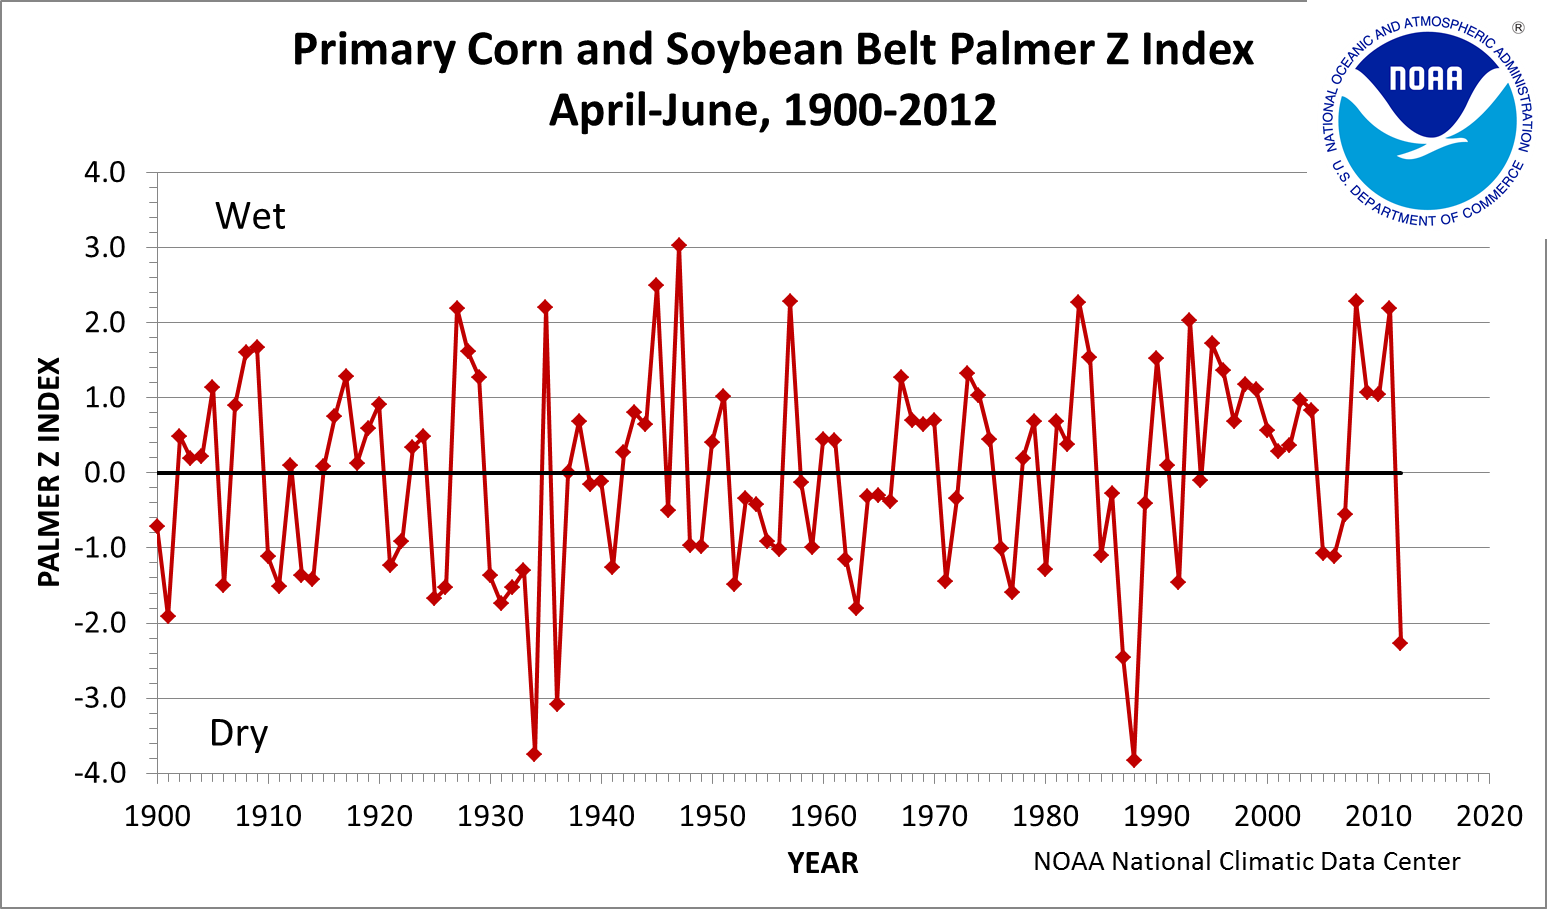 Primary Corn and Soybean Belt Palmer Z Index, April-June, 1895-2012